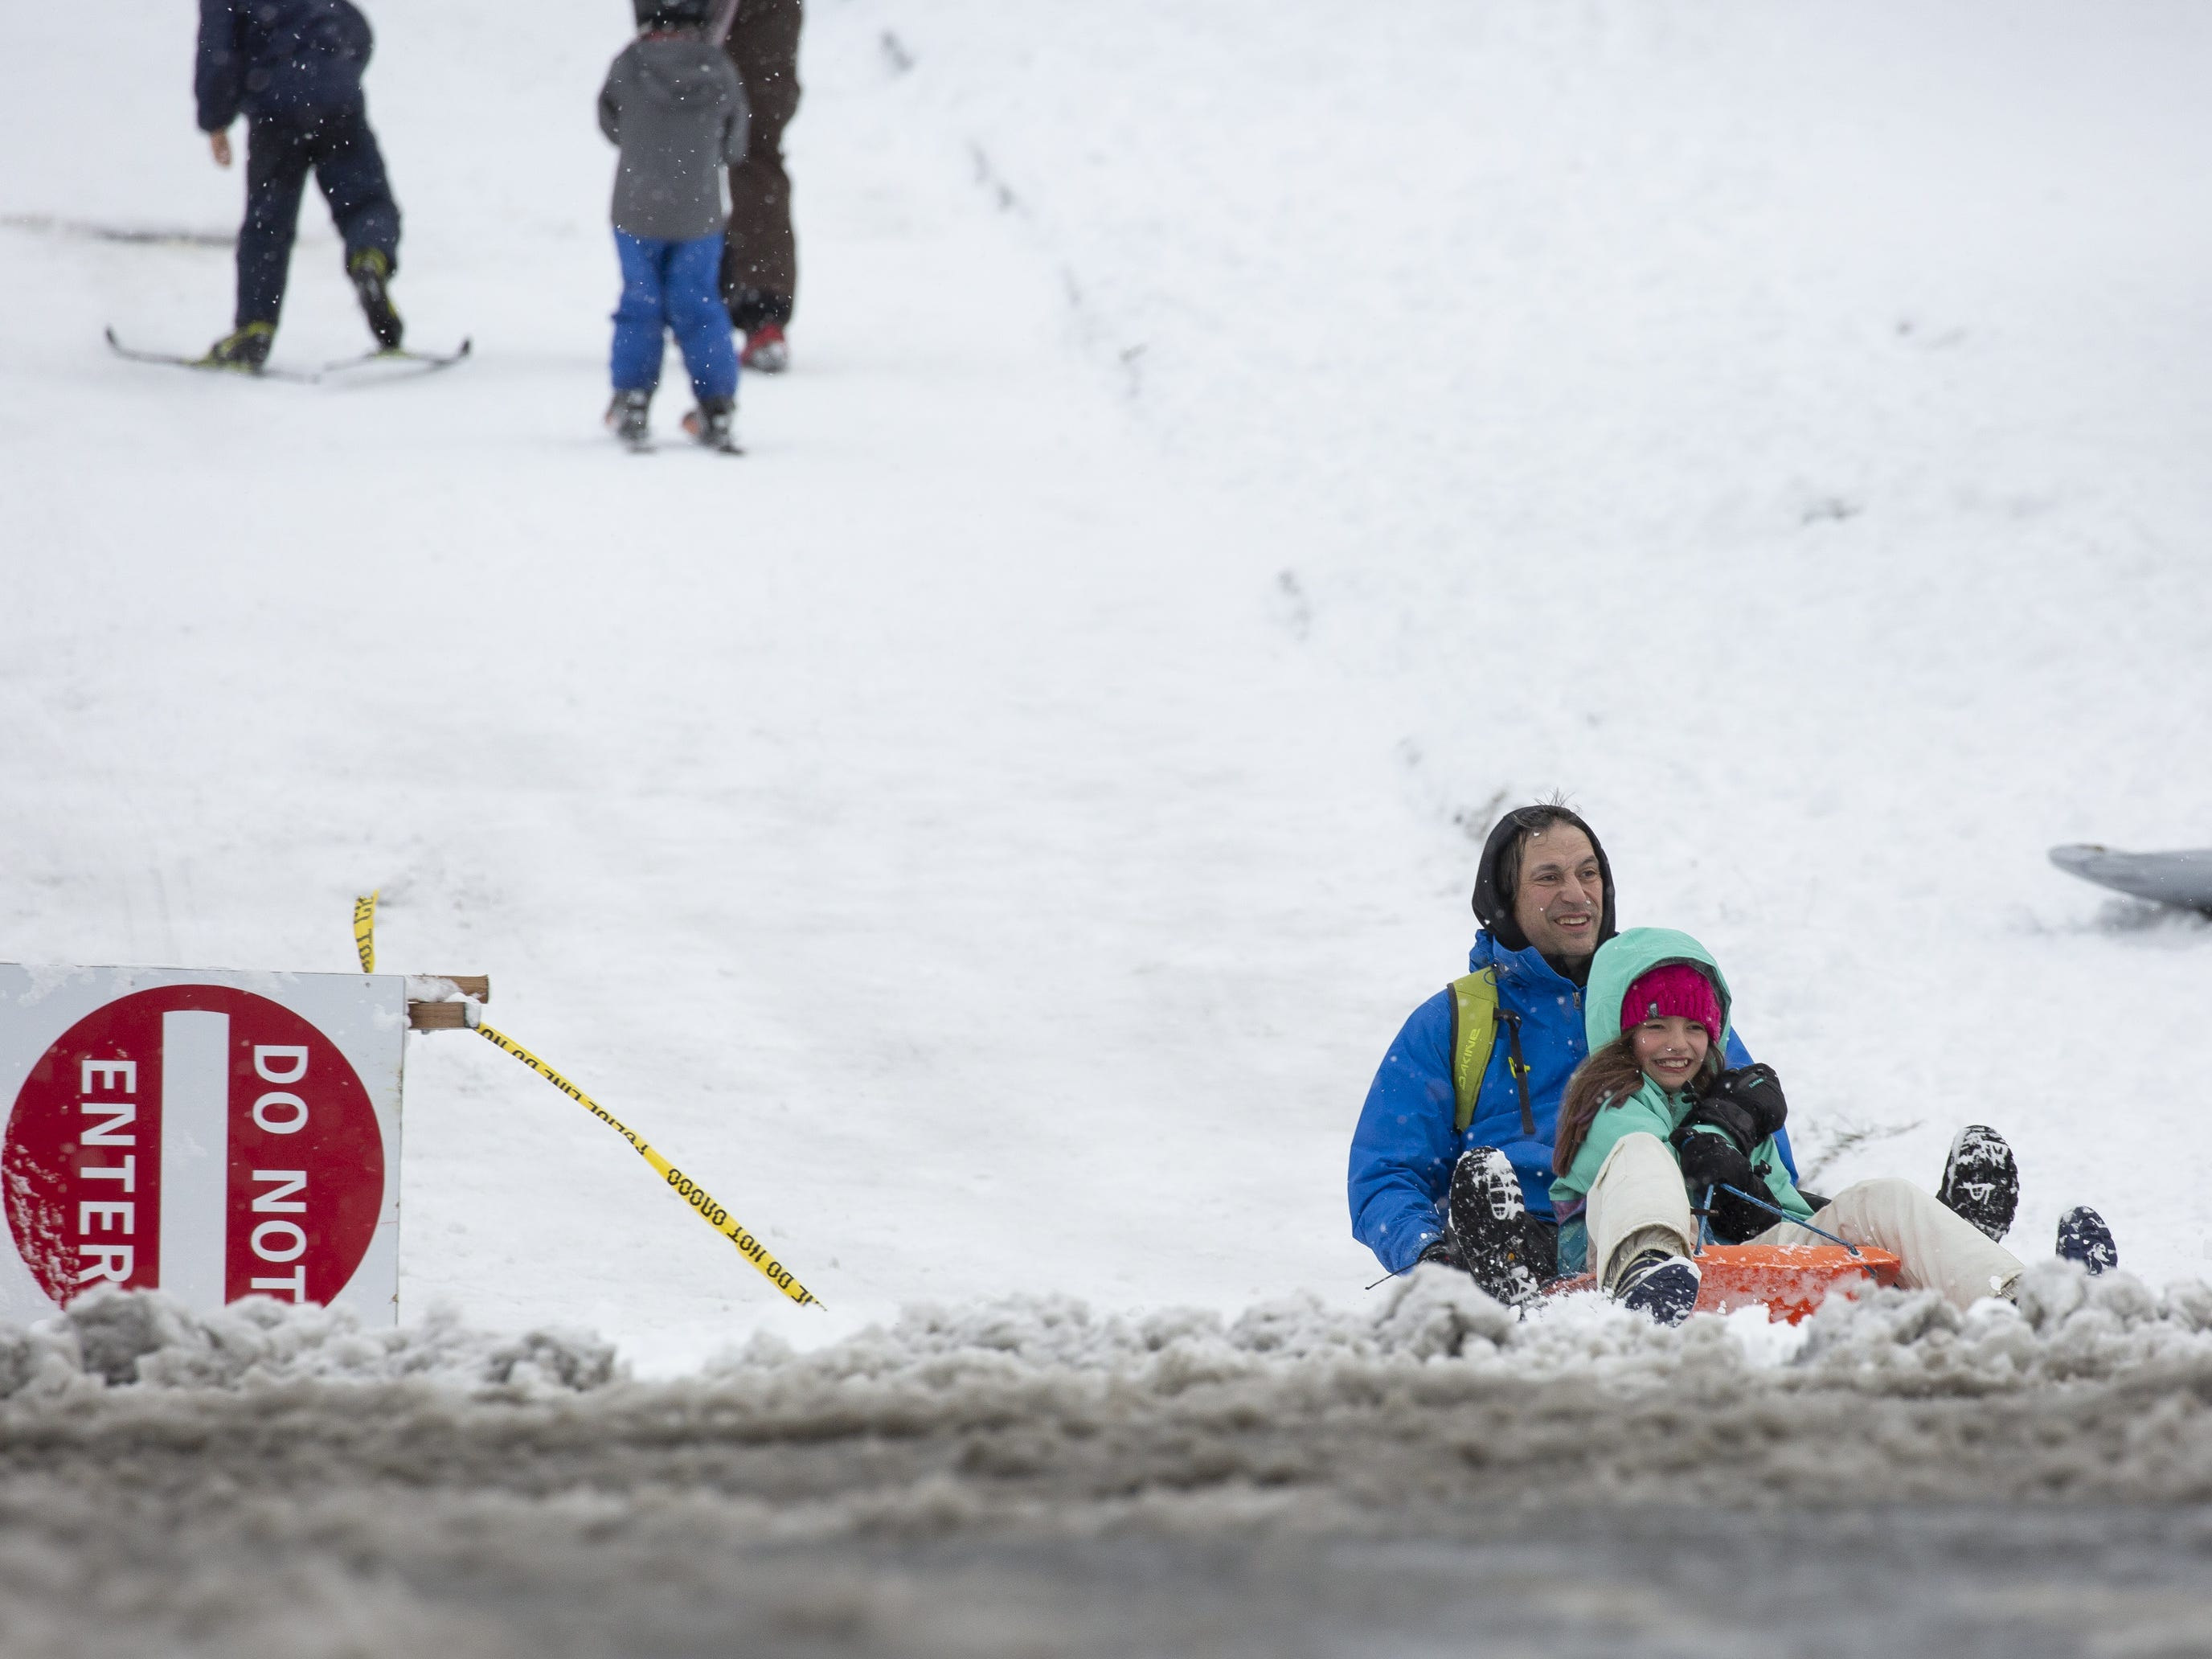 People sled on a hill in the Phinney Ridge neighborhood after a large storm blanketed the city with snow on February 9, 2019 in Seattle, Washington.